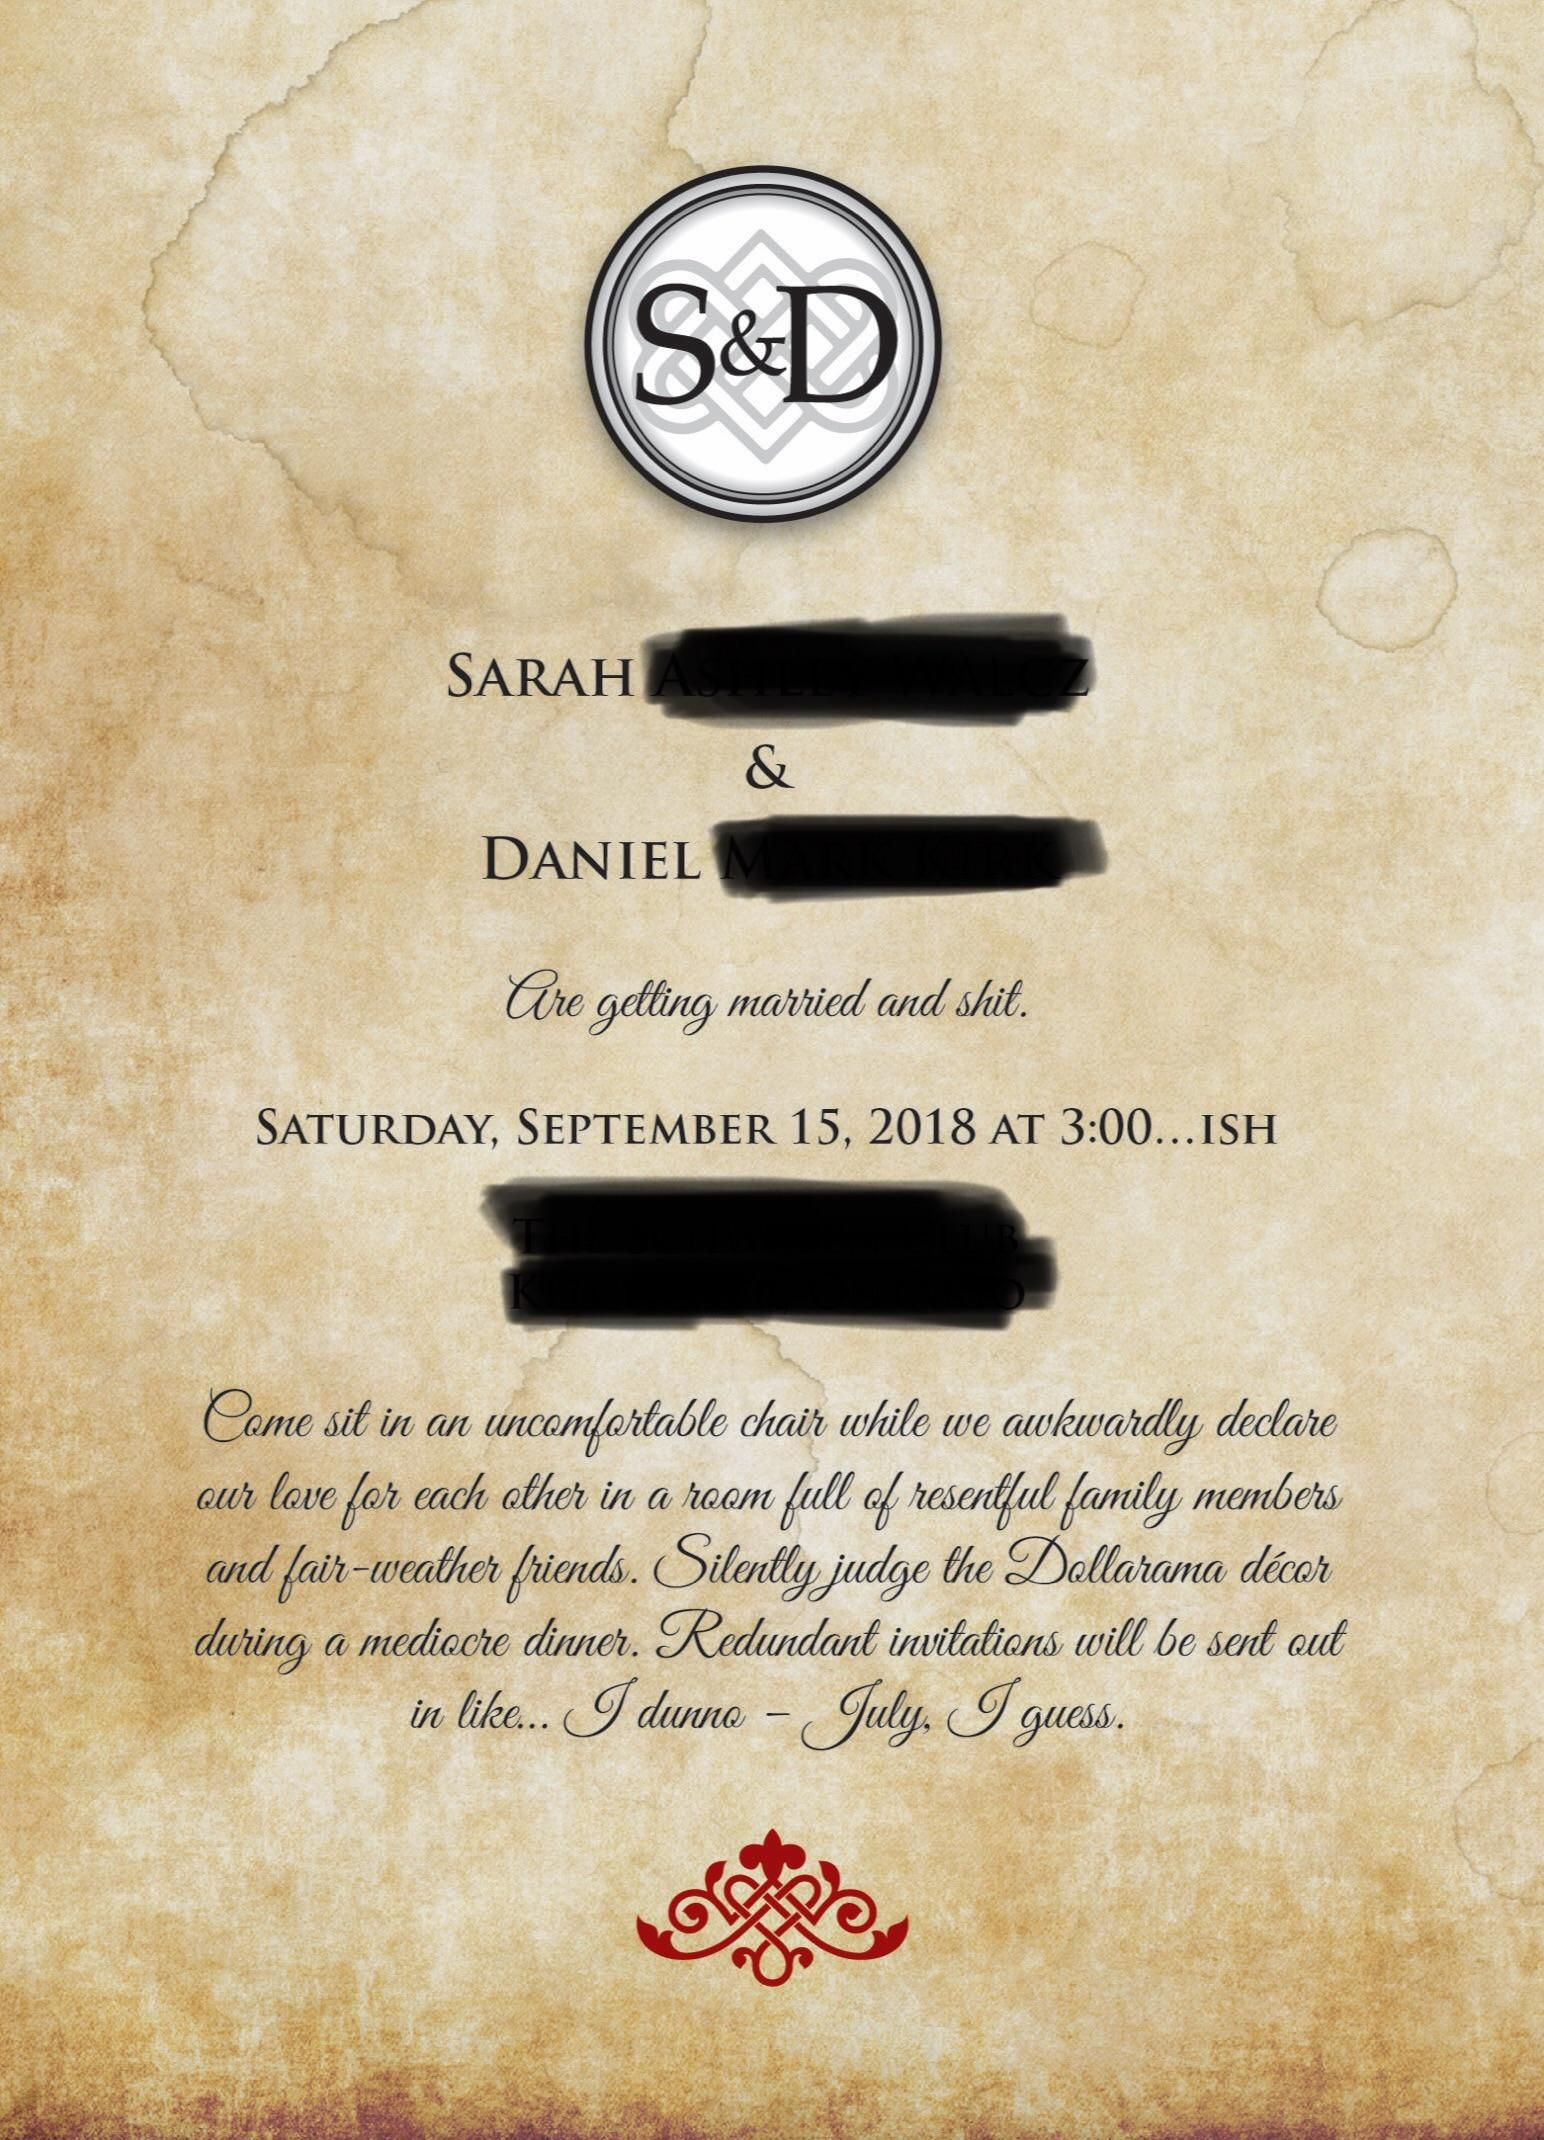 Best wedding Save the Date ever